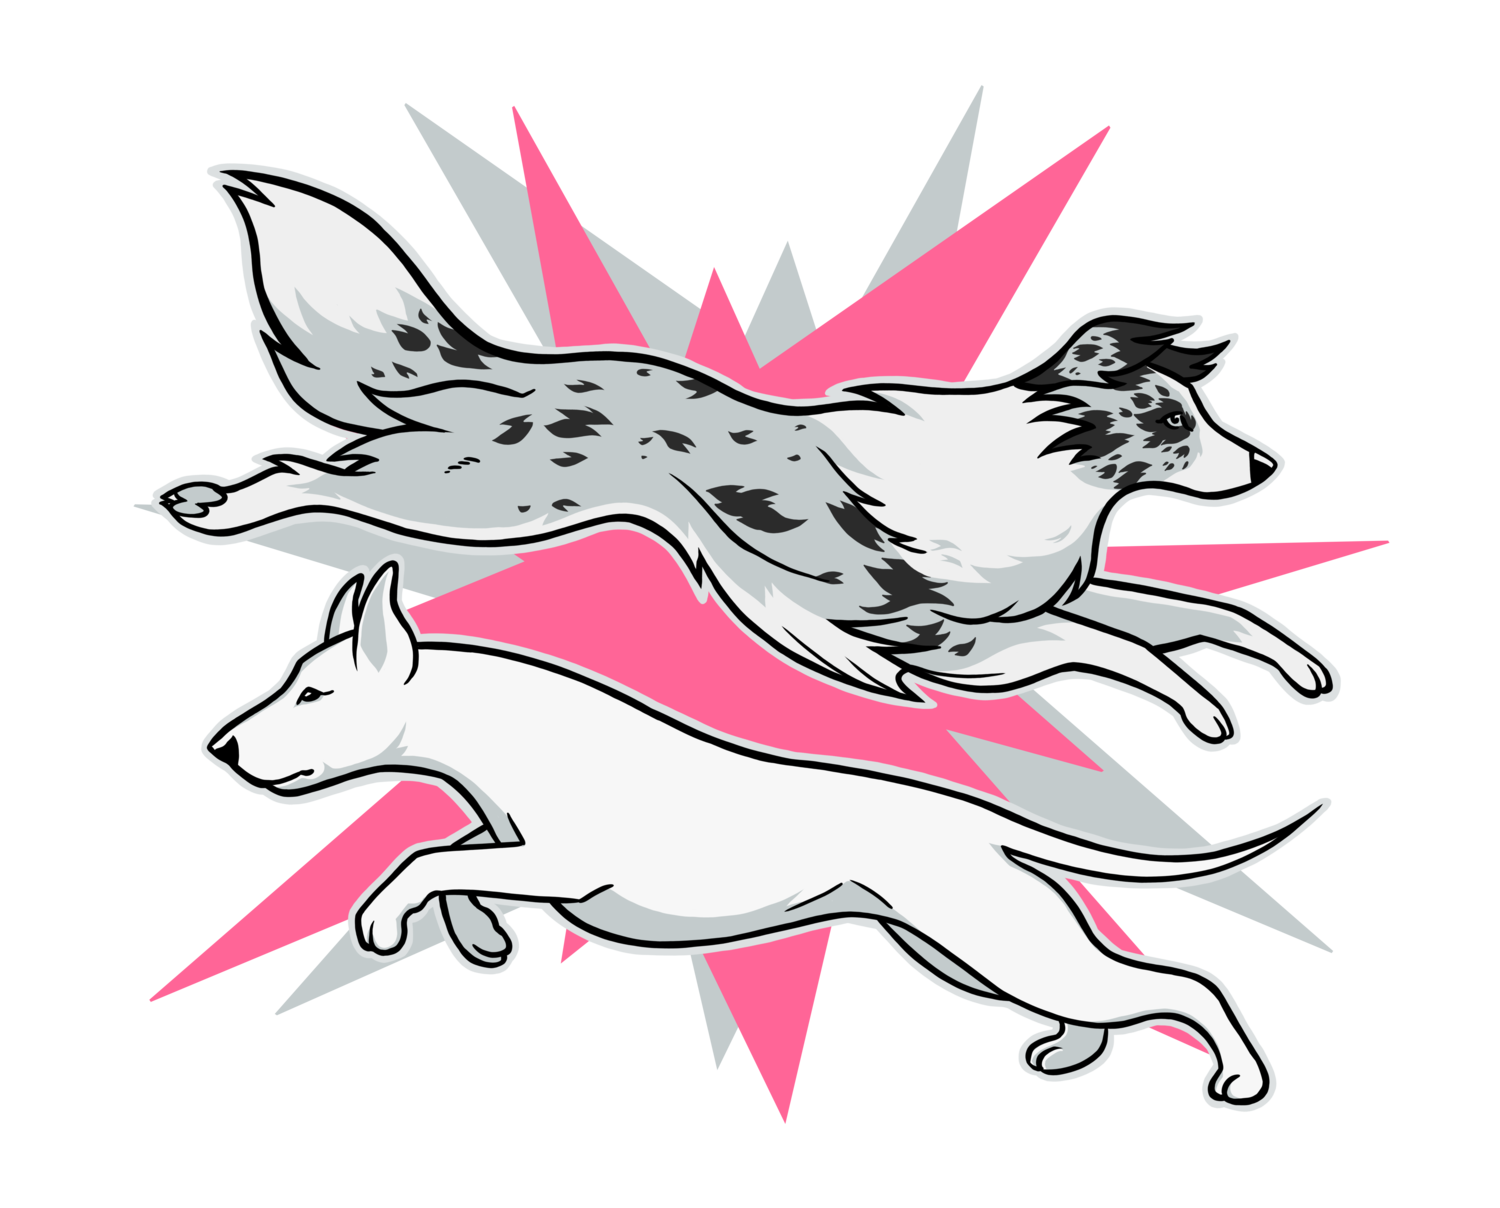 About ariana purtee a. Dog jumping through hoop clipart